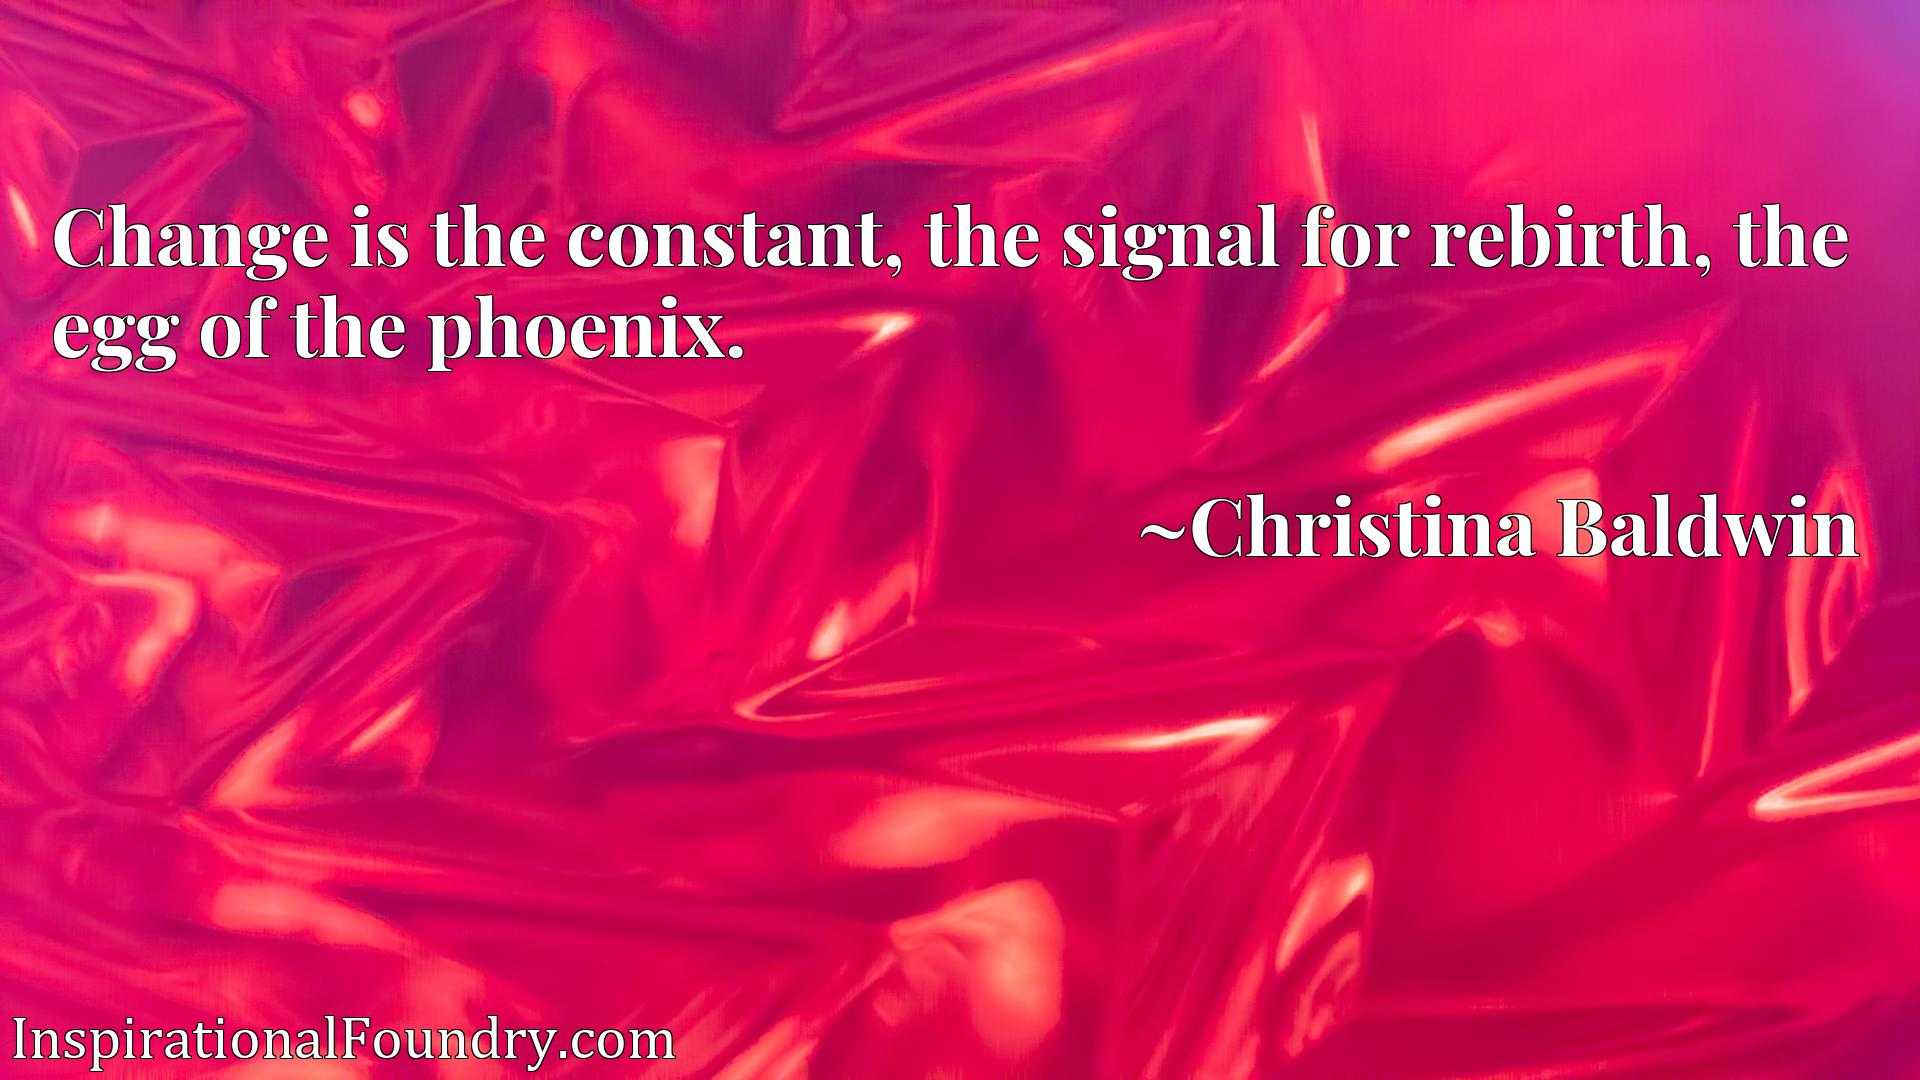 Change is the constant, the signal for rebirth, the egg of the phoenix.